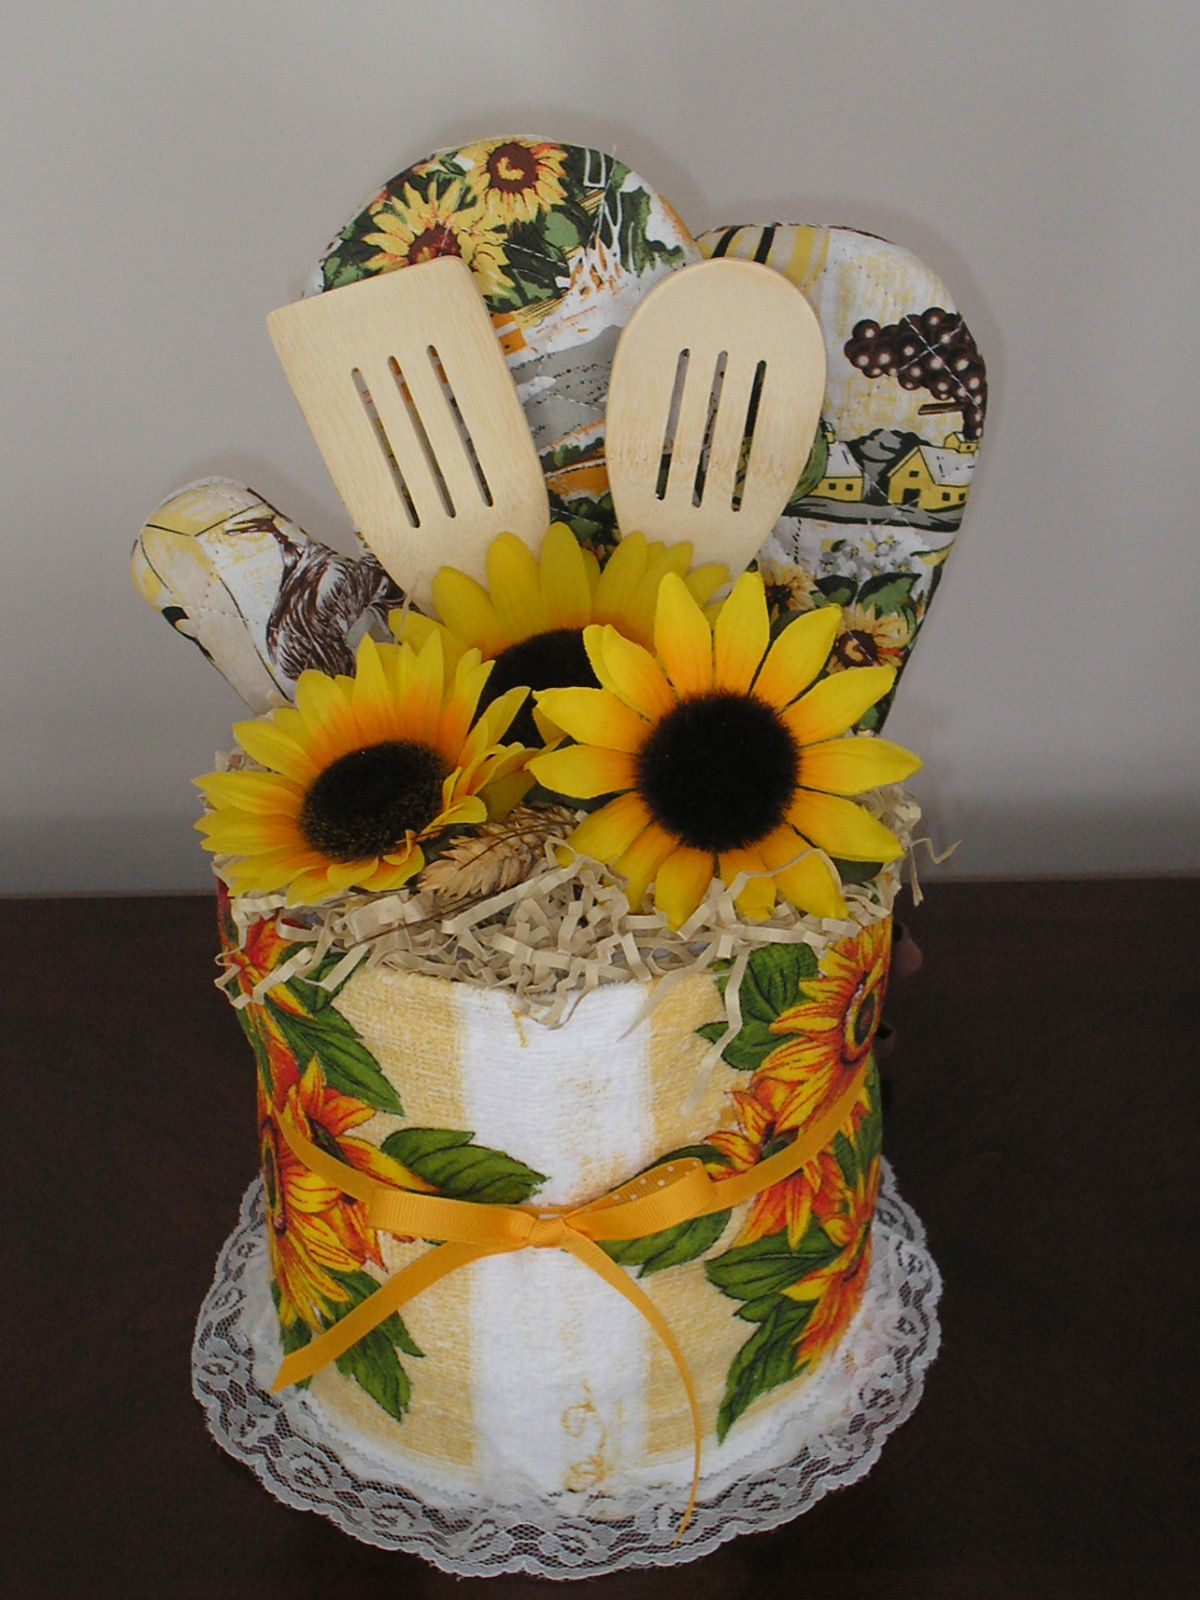 10 Photos To Sunflower Kitchen Towels